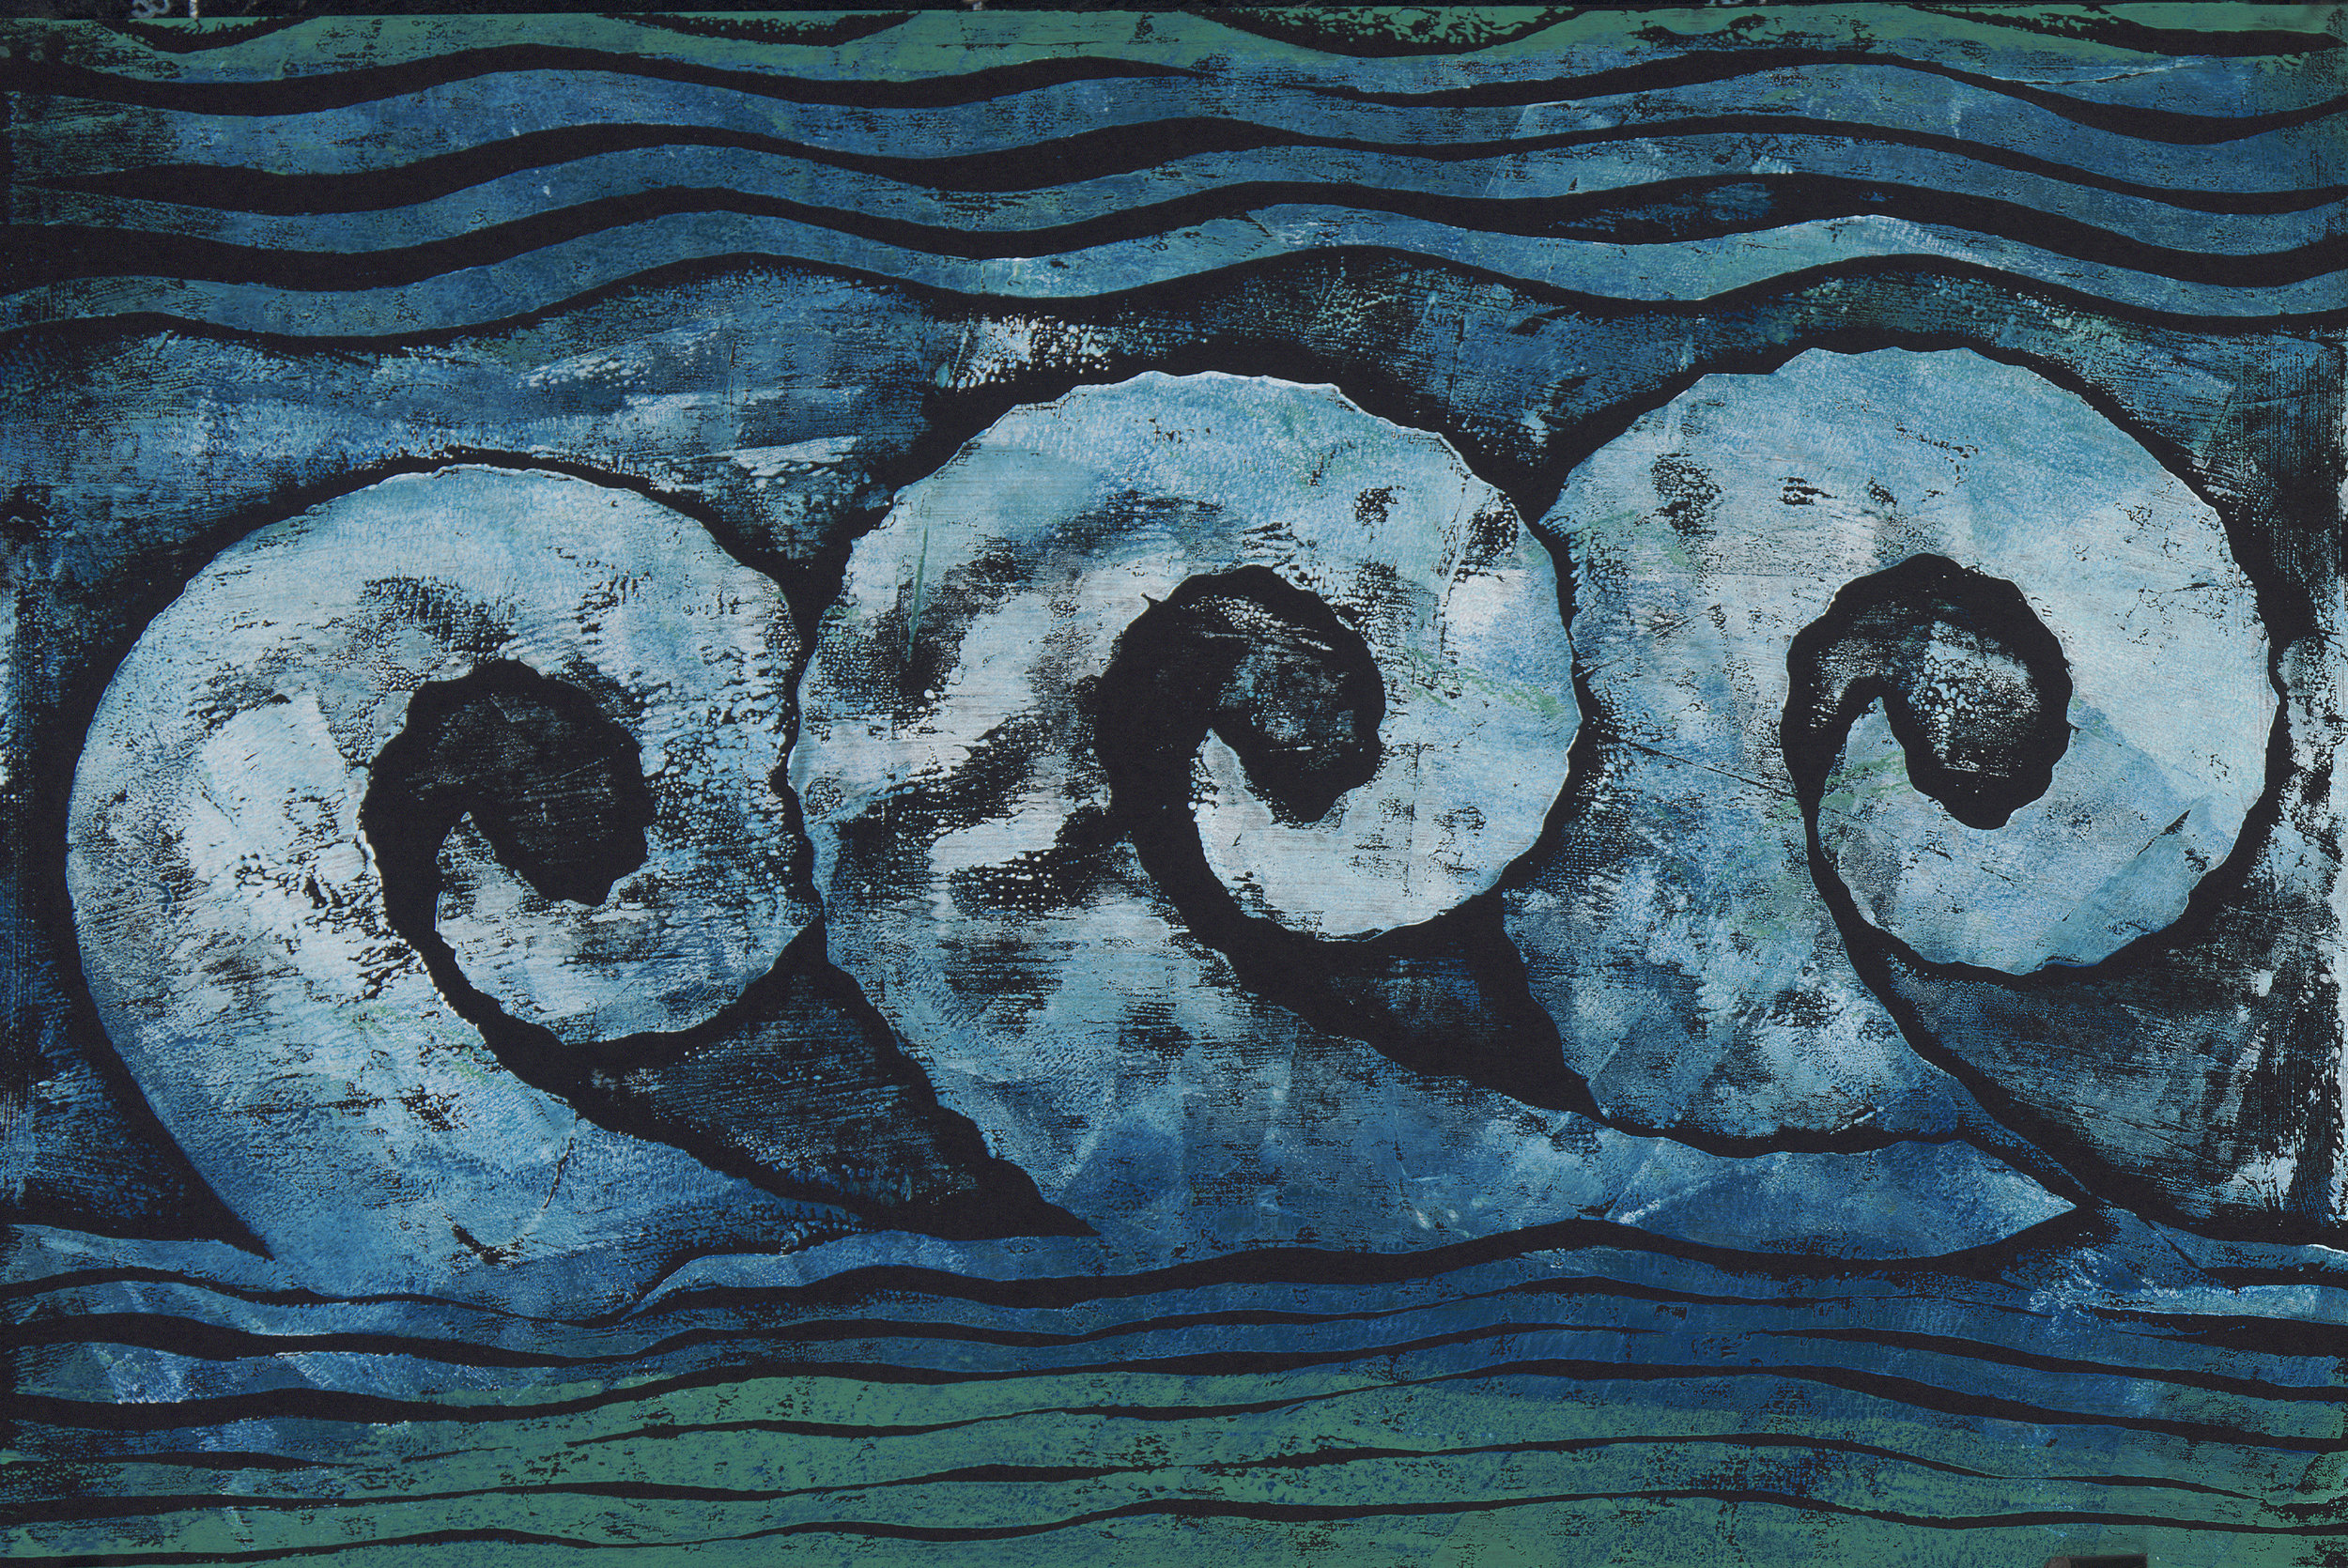 Waves in the Wind - Hand Rubbed Collograph